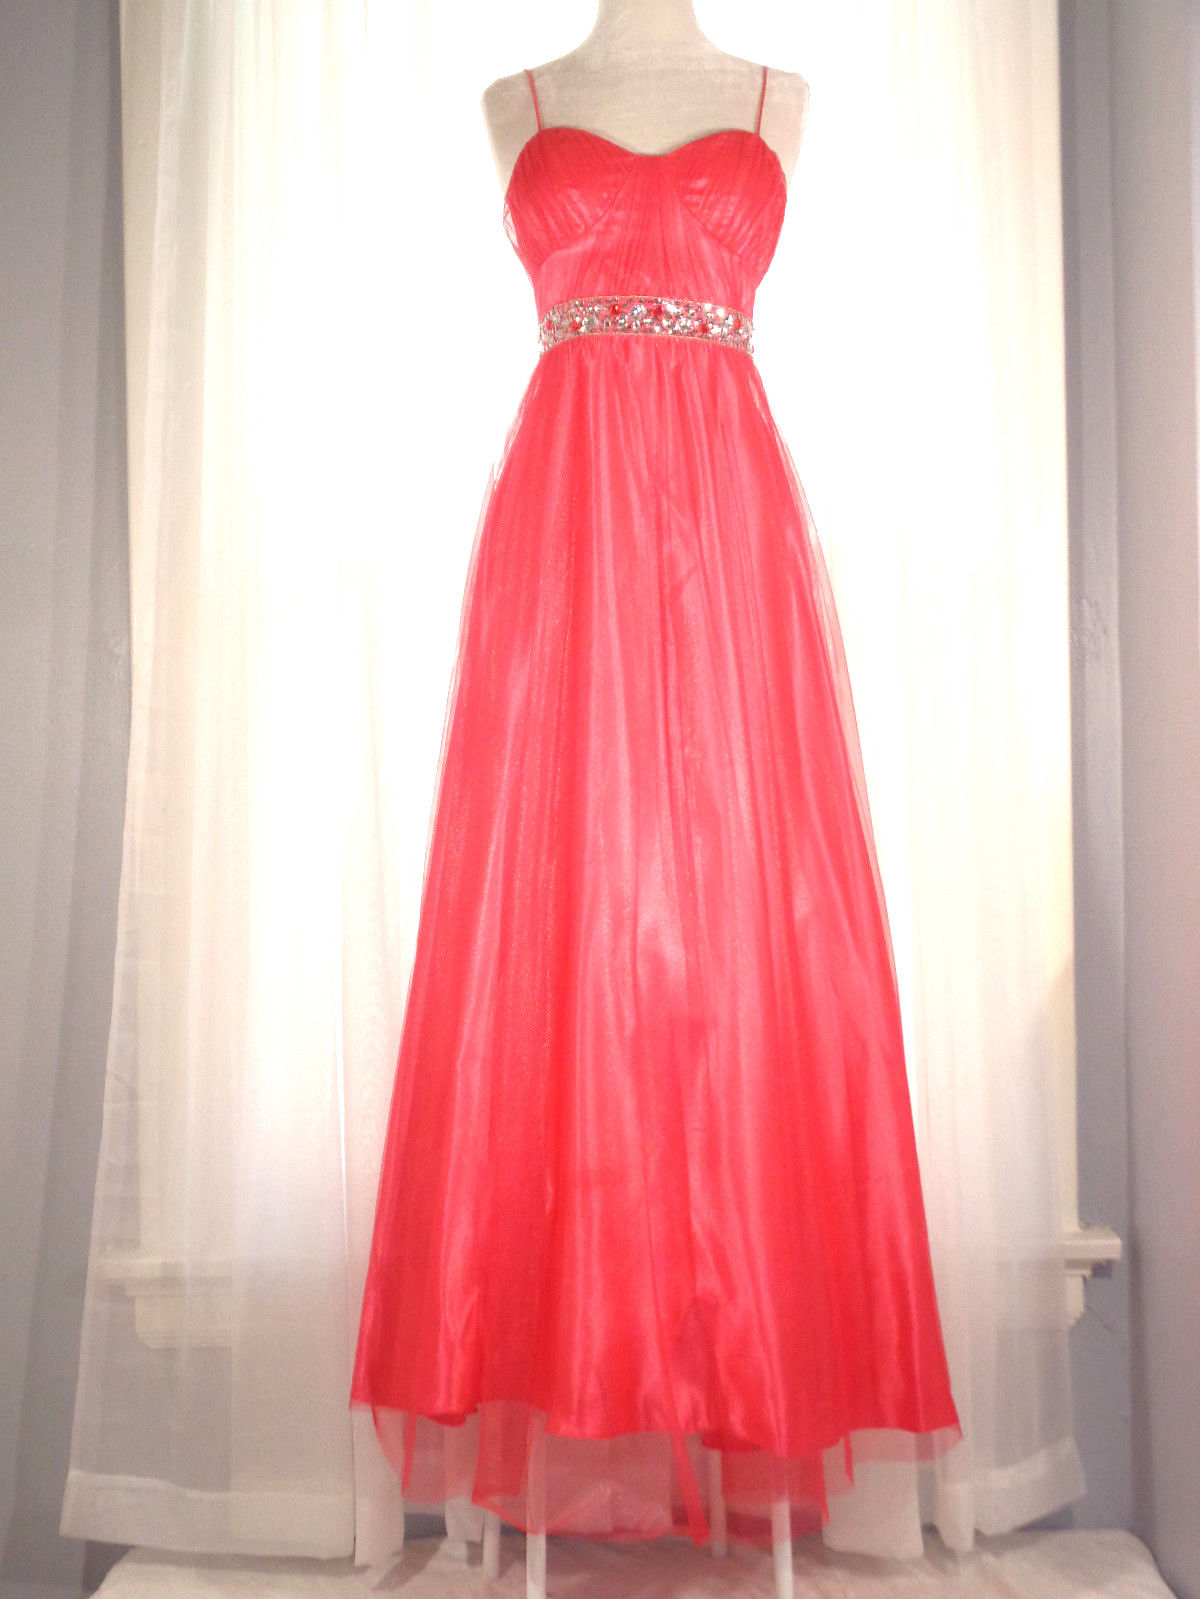 37fc18c58a6 Amazing REIGN ON Prom Dress Coral Satin Mesh Sequin Size 1 2 Formal ...